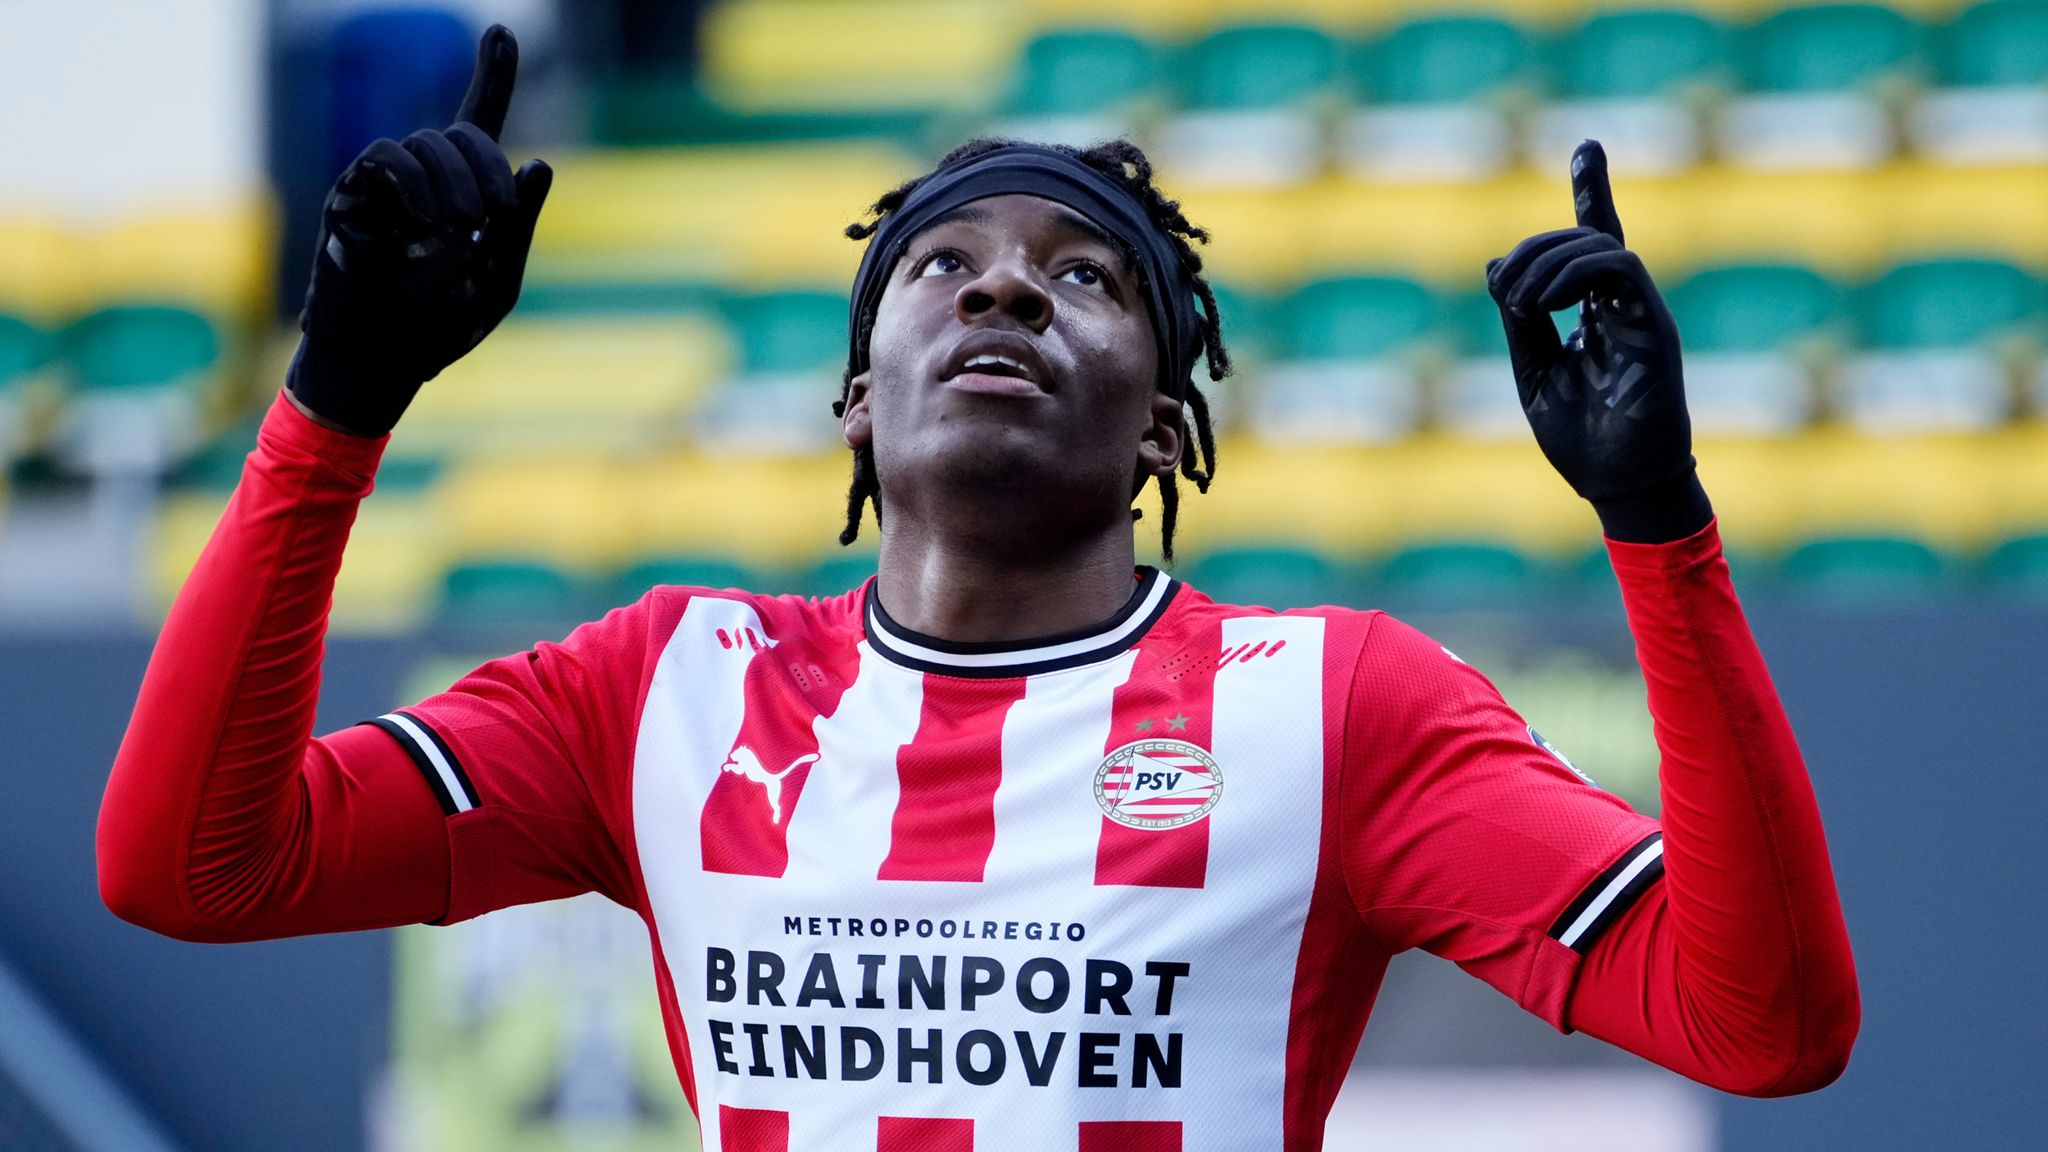 Noni Madueke impressing at PSV: English youngster scores again in  Eredivisie win over Fortuna Sittard | Football News | Sky Sports